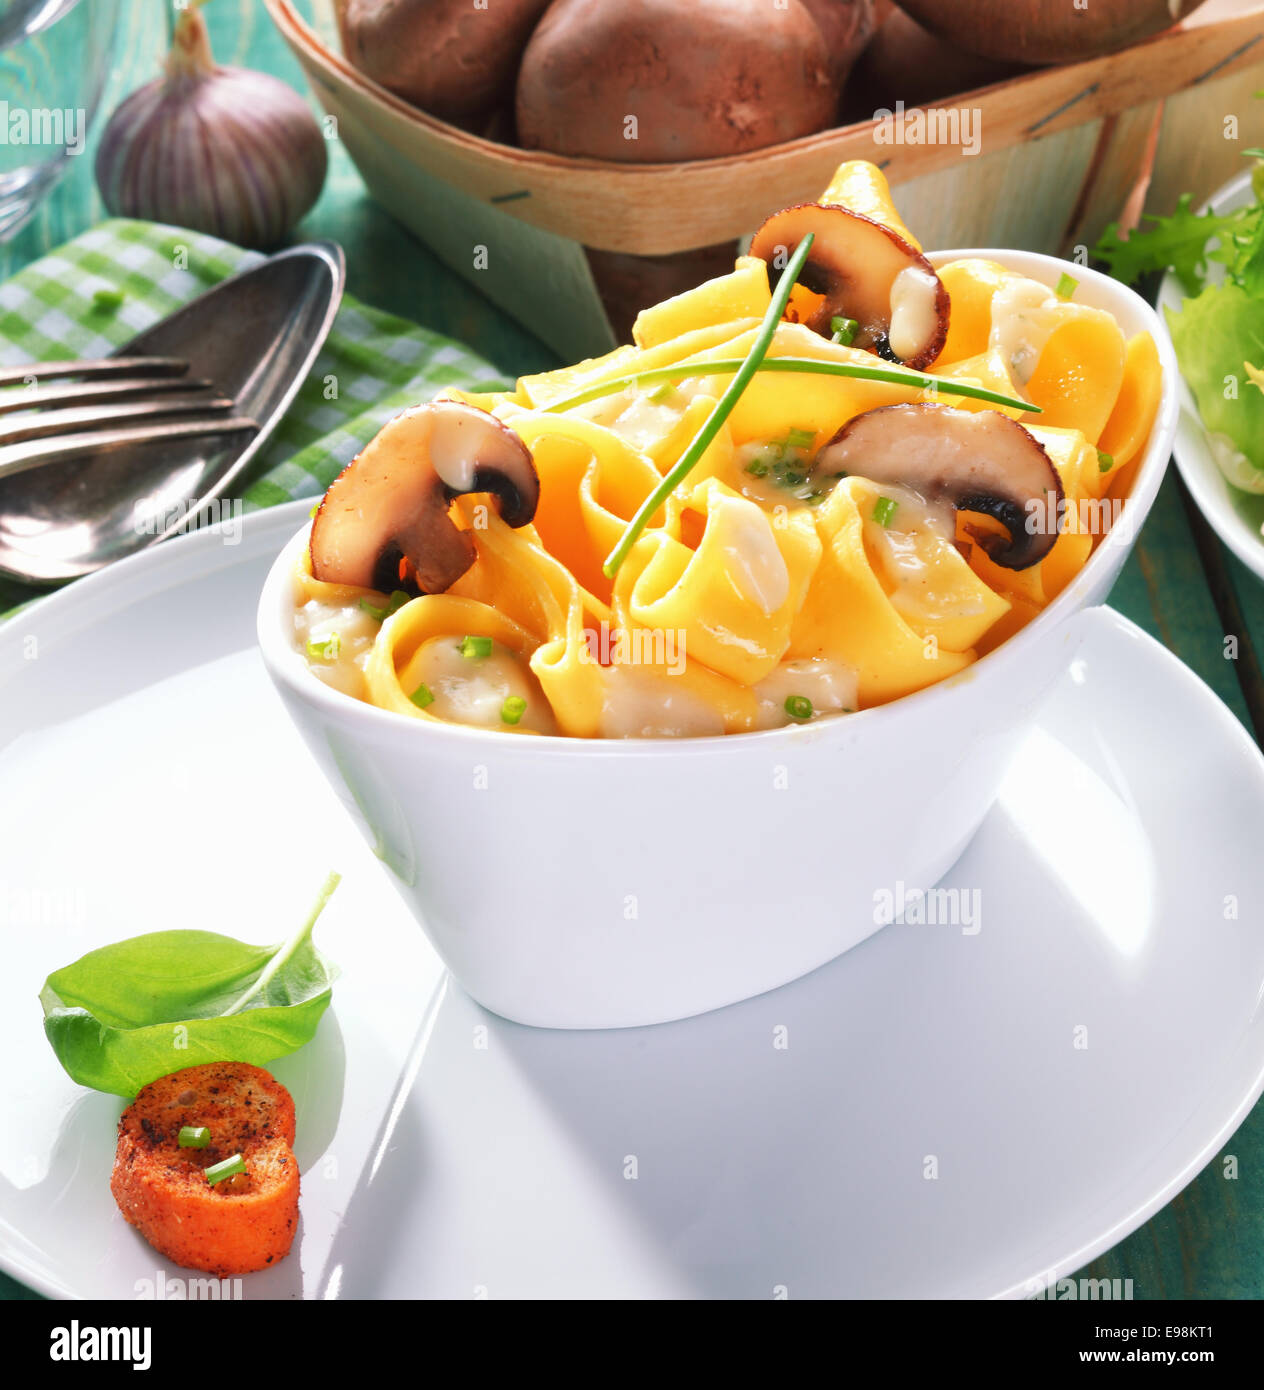 Closeup of a white boat-shaped dish of tasty tagliatelle with mushrooms - Stock Image